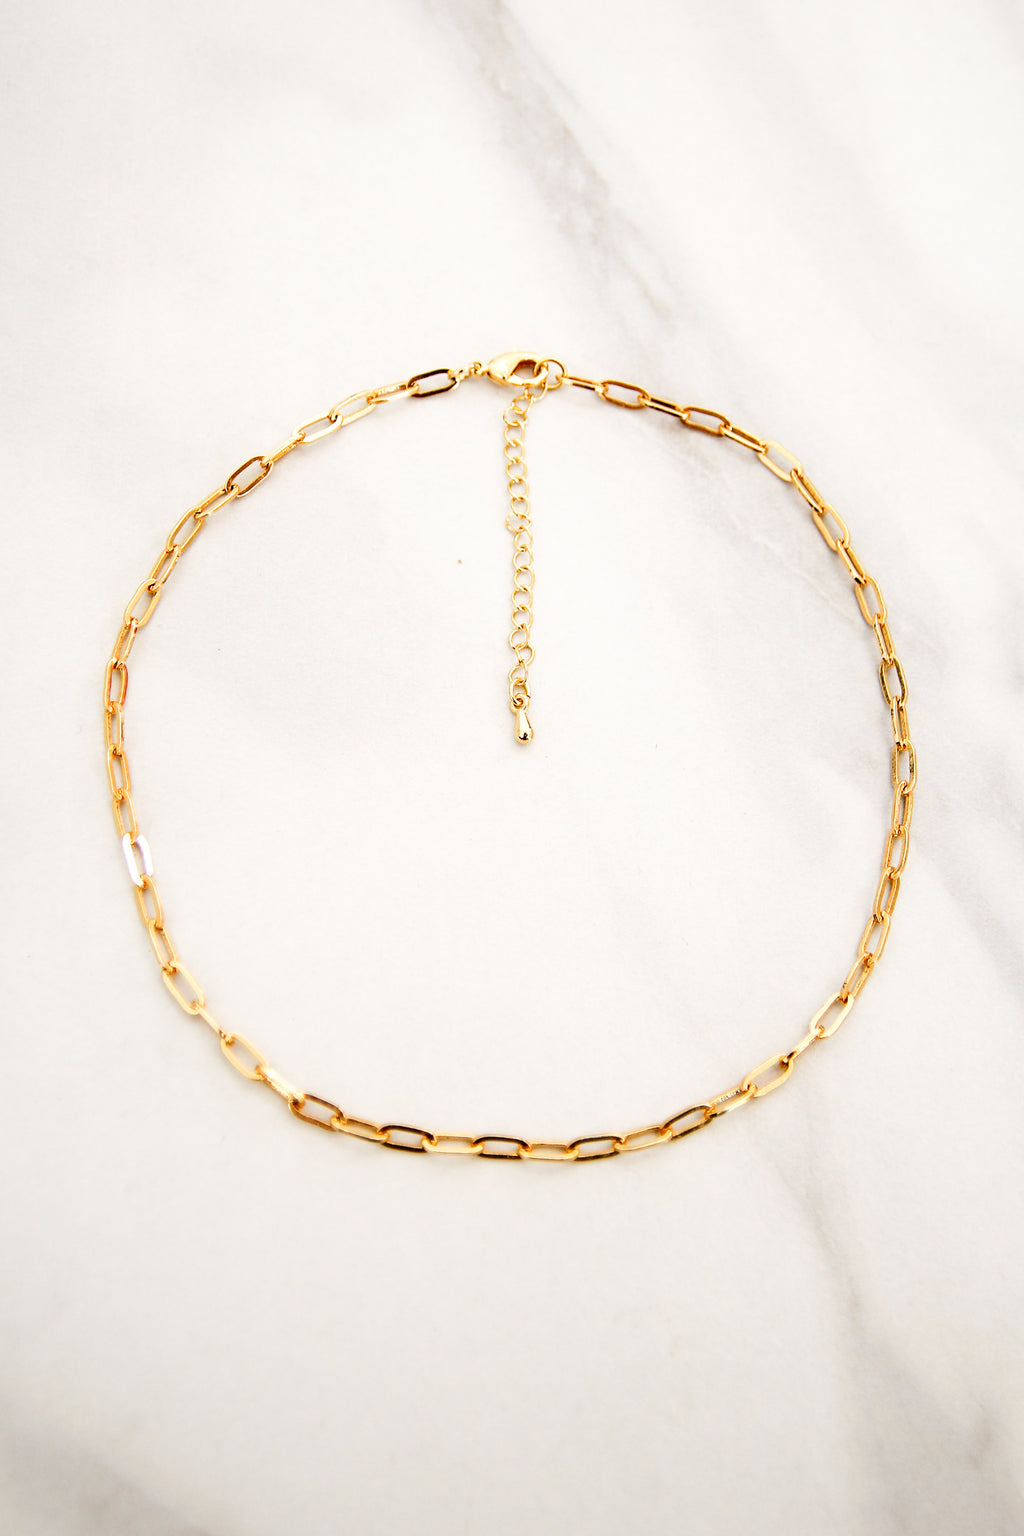 Layer It Up Chain Choker - Gold